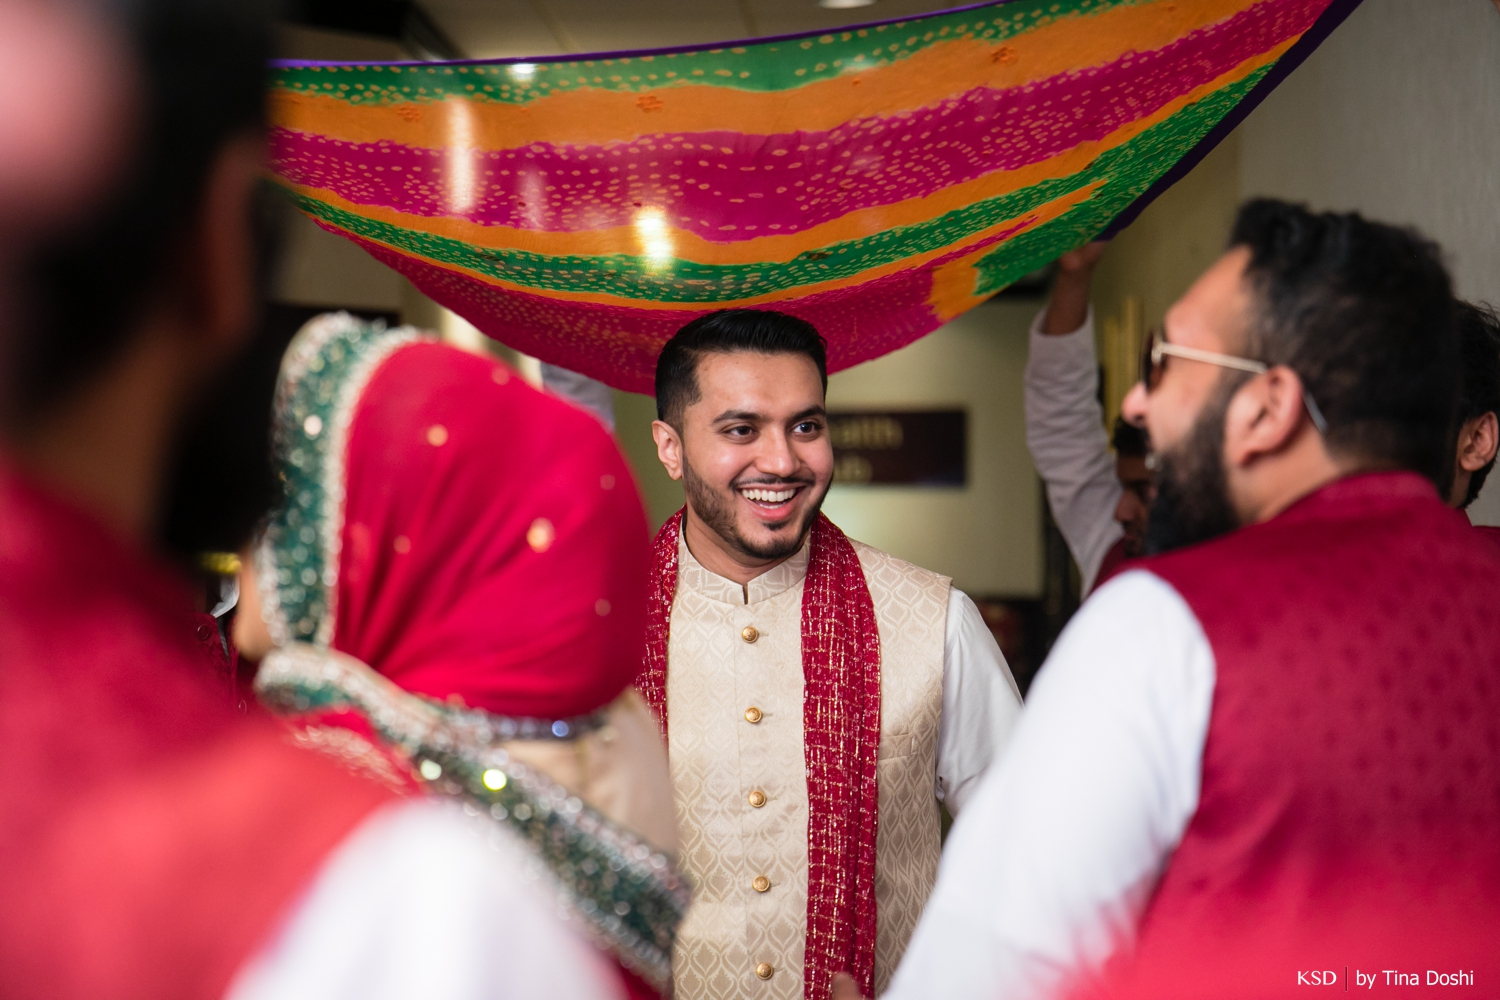 nj_south_asian_wedding_0050